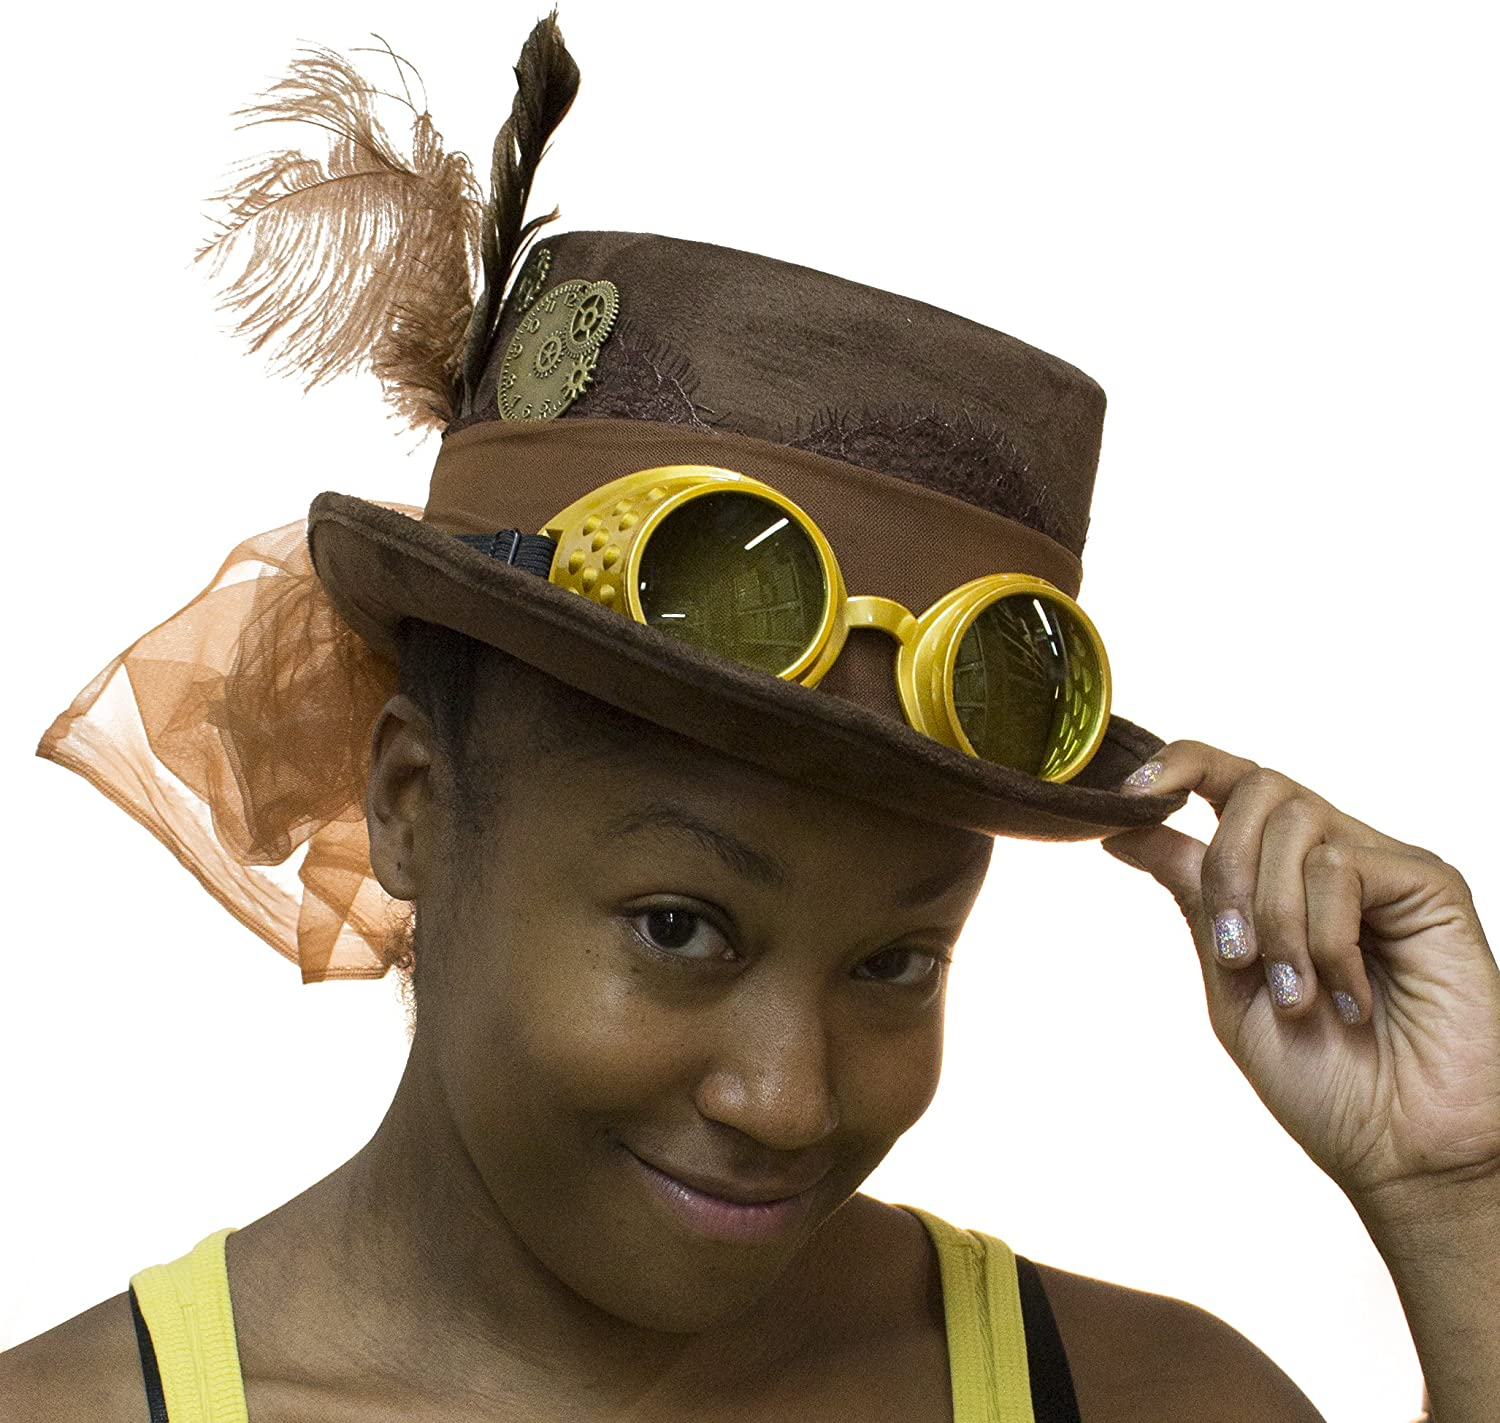 Steampunk Hats | Top Hats | Bowler Deluxe Velvet 4.25 Inch Steampunk Top Hat with Removable Goggles $24.49 AT vintagedancer.com